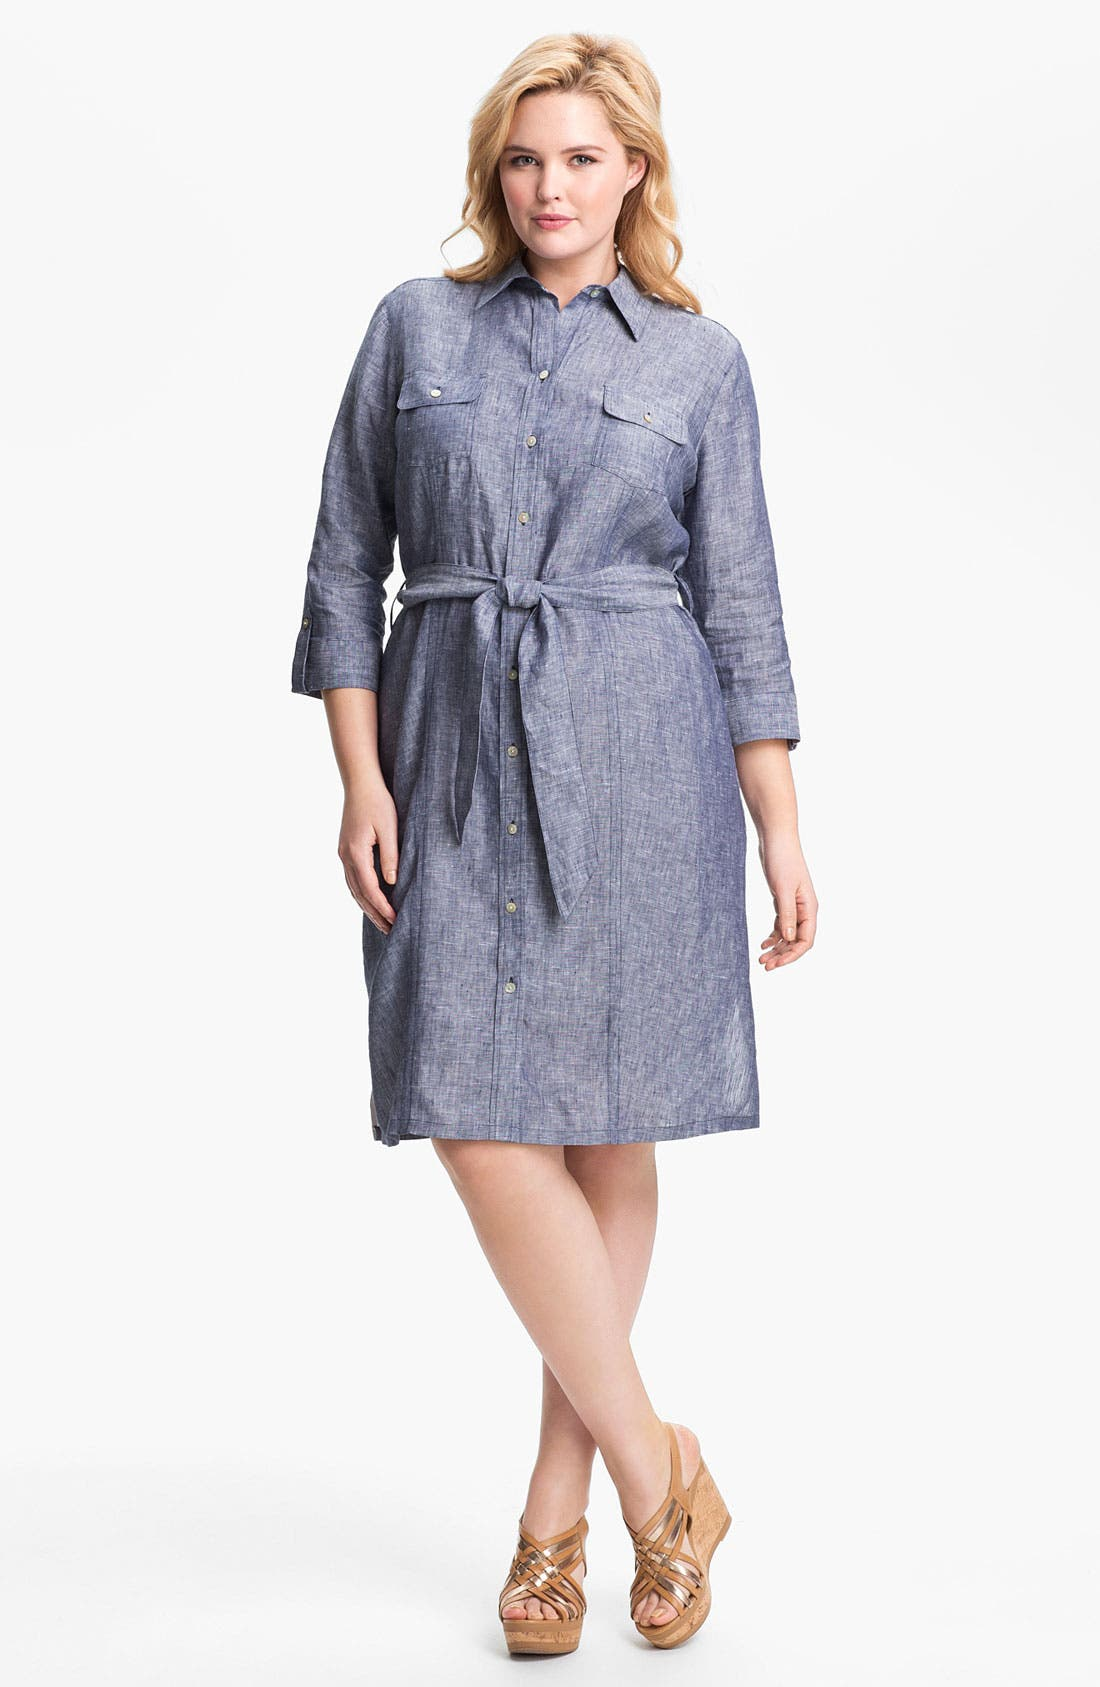 Alternate Image 1 Selected - Foxcroft Chambray Linen Shirtdress (Plus Size) (Online Only)